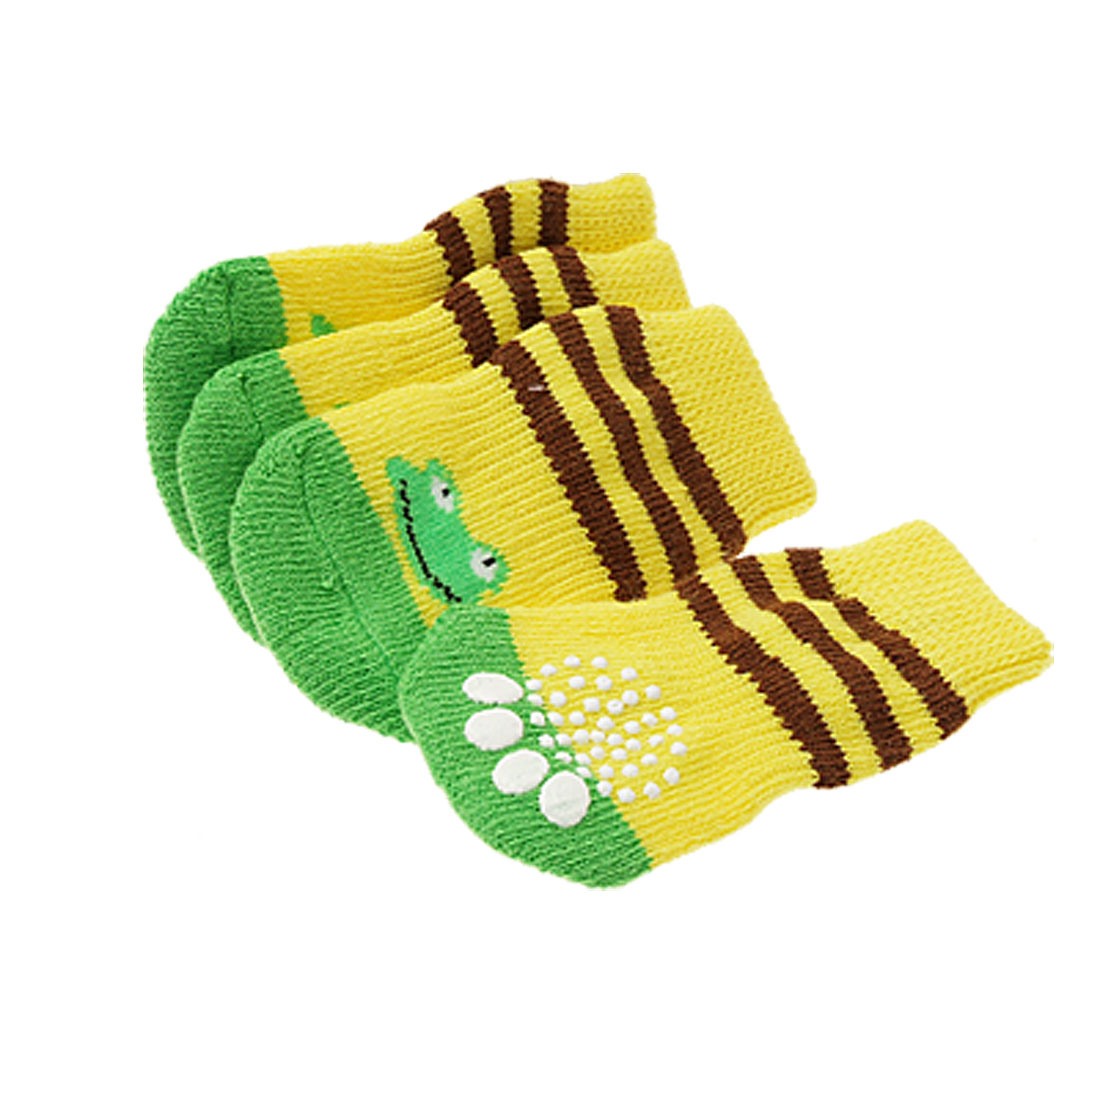 4 Pcs Pet Dog Puppy Socks with Frog Pattern 8 x 4cm